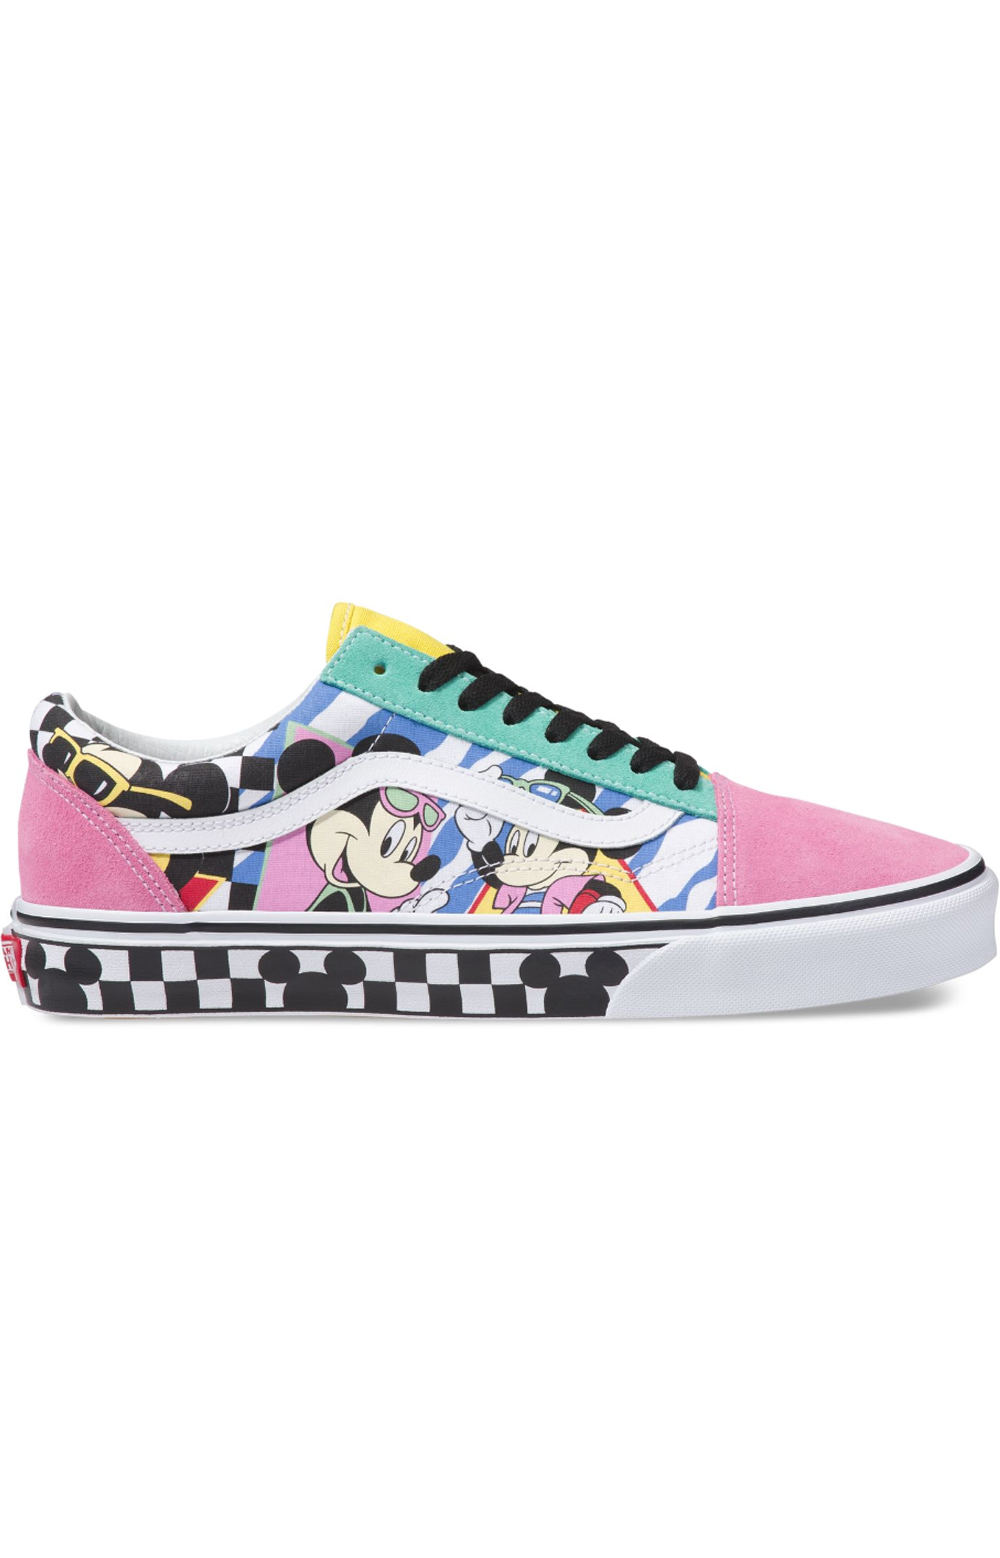 (8G1UJE) Old Skool Shoe - 80s Mickey Mouse. Loading... Home · Brands · Vans  Women s x Disney ... 2fc38e6b4bc